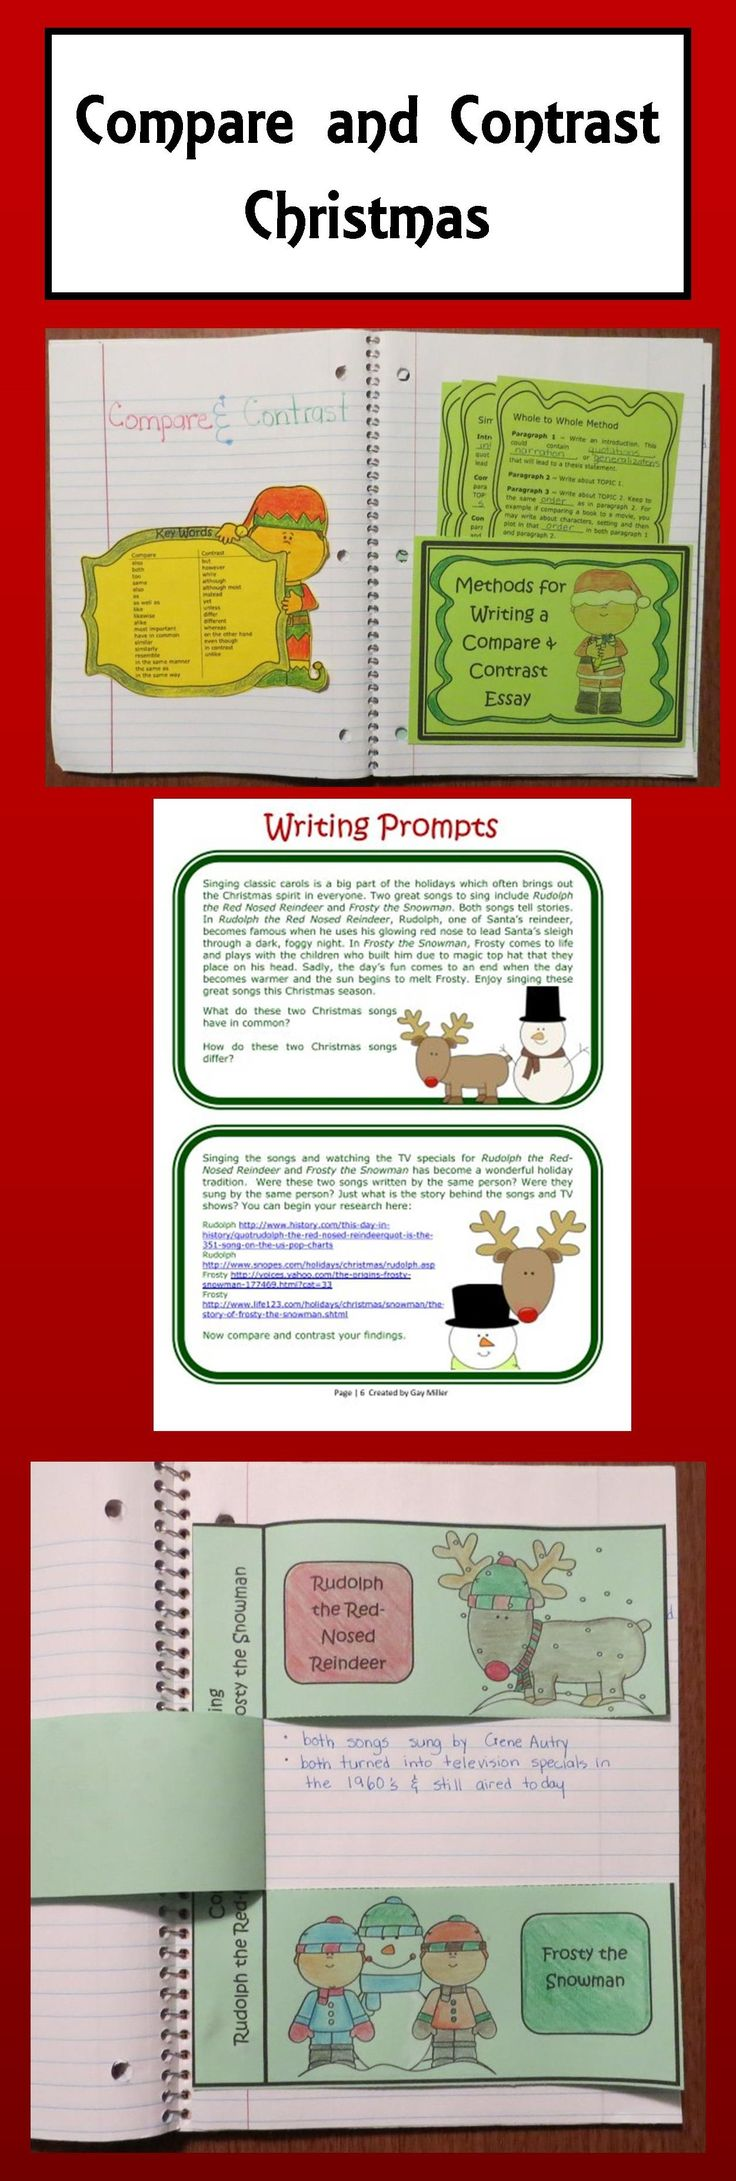 Free Compare and Contrast Christmas Activities